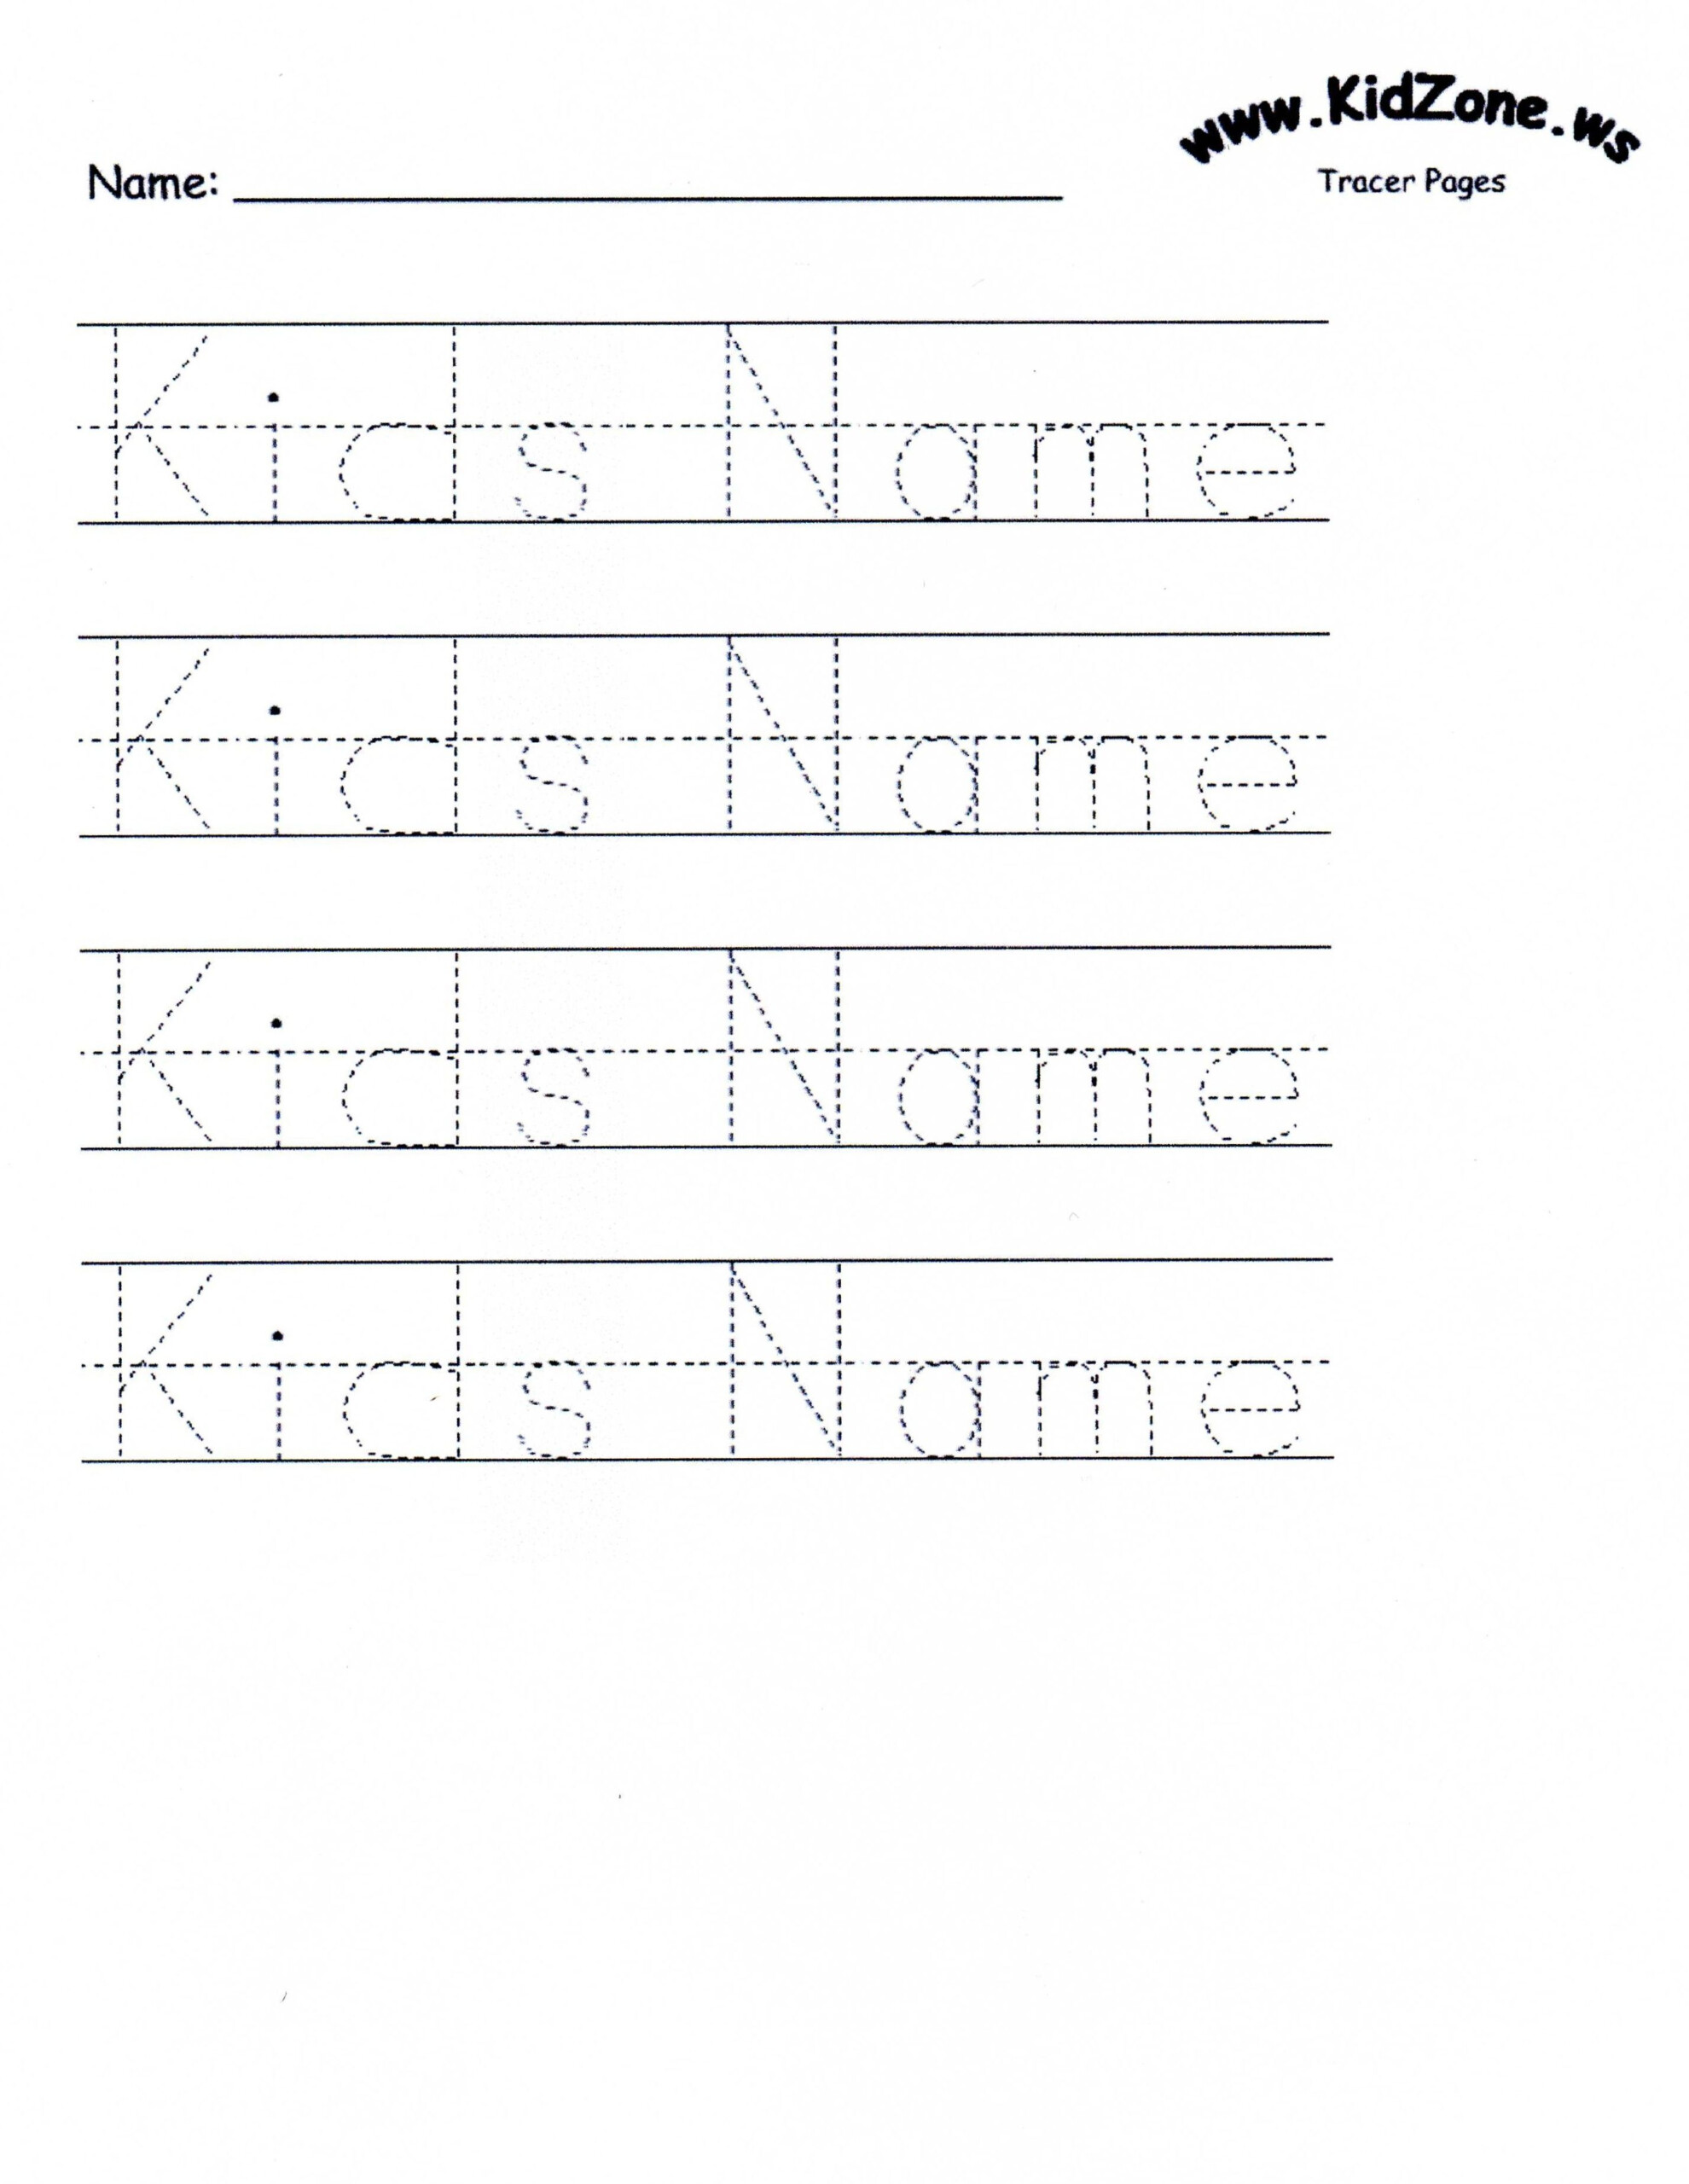 Name Tracing Worksheets For Printable. Name Tracing